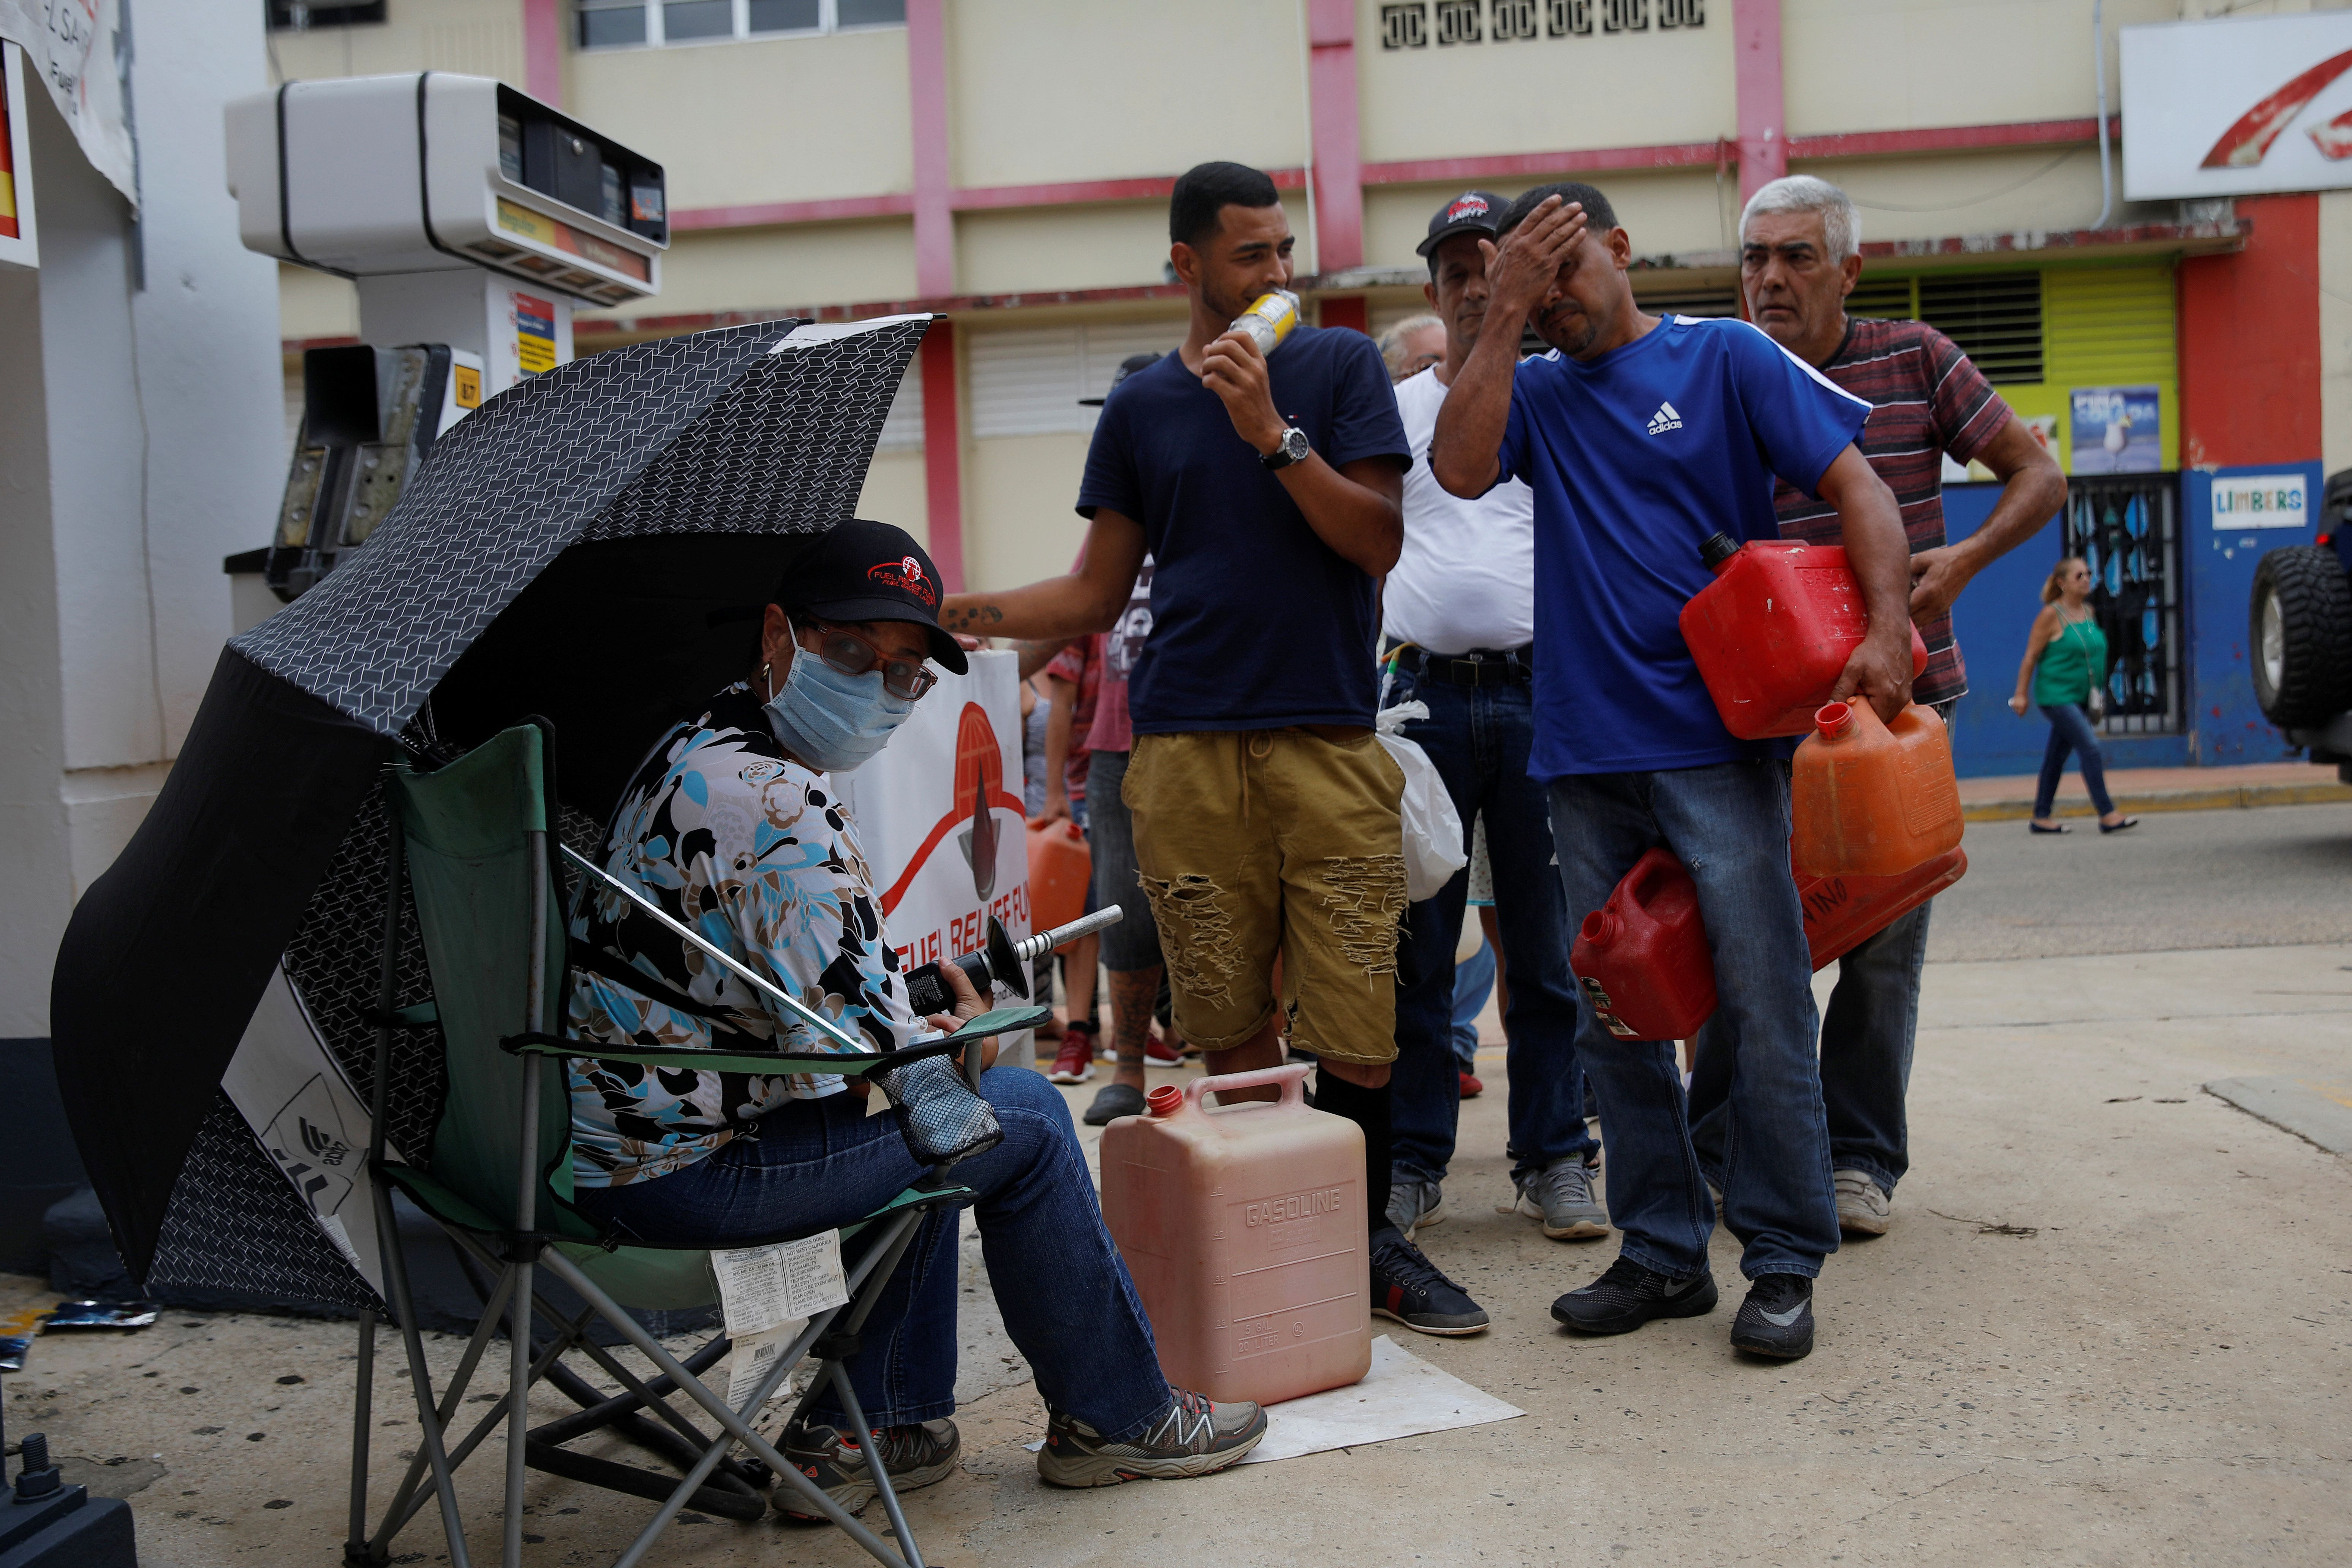 Residents affected by Hurricane Maria wait in line for fuel donated by the Fuel Relief Fund in the municipality of Orocovis, outside San Juan, Puerto Rico, October 10, 2017. REUTERS/Shannon Stapleton